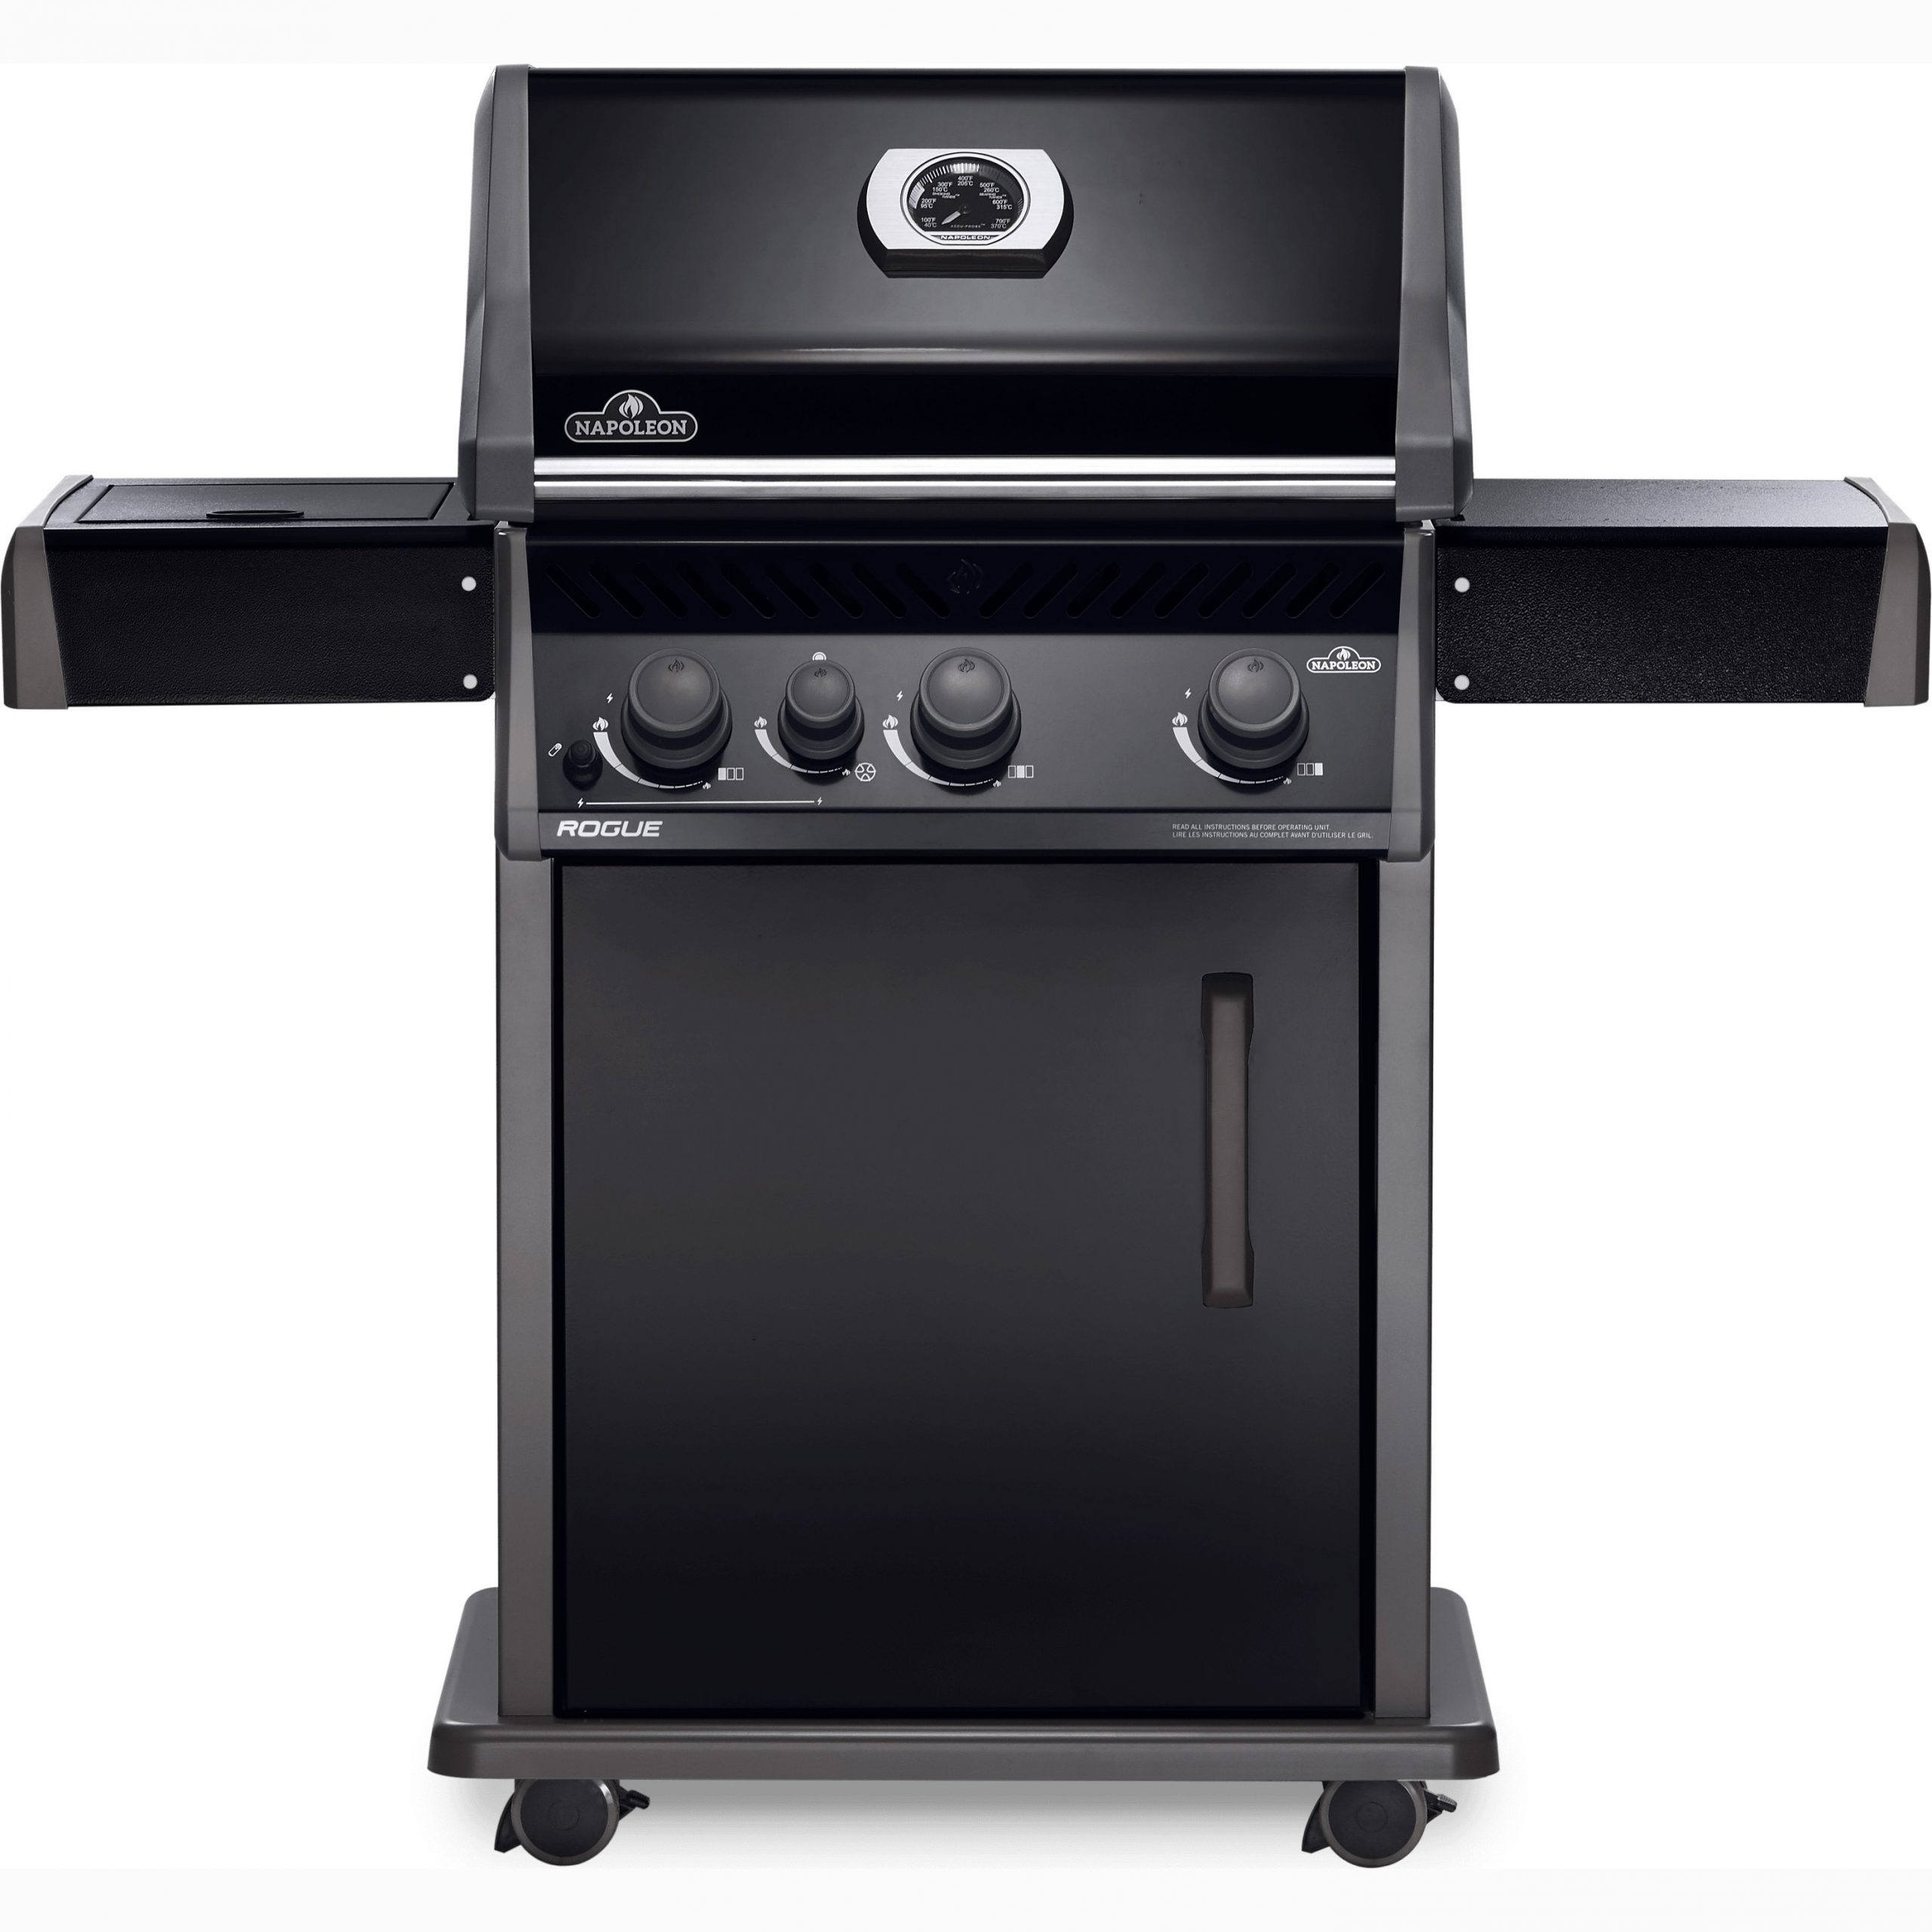 Napoleon draaispit Rogue serie Cookers & Grills